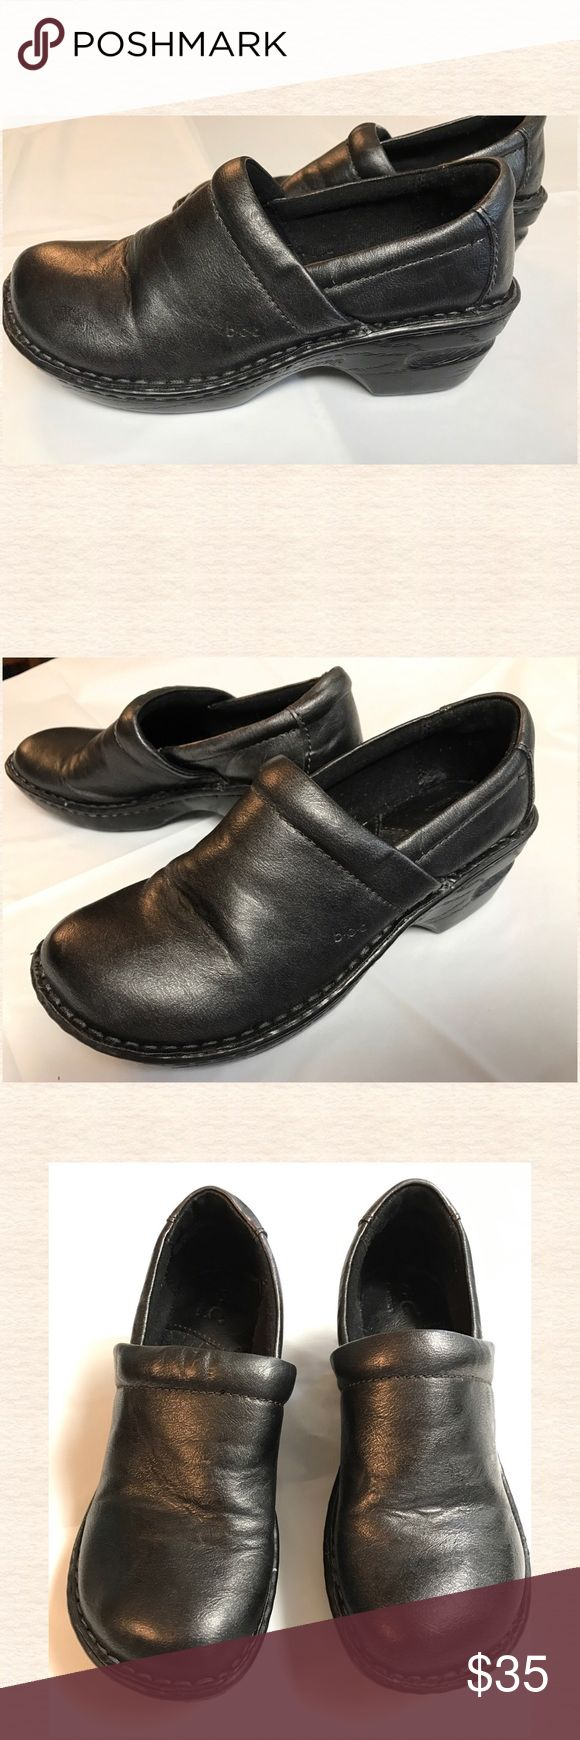 b.o.c Women's Clogs This slip-on clog is perfect for everyday wear. -Contoured heel -Lightweight outsole b.o.c. Shoes Mules & Clogs